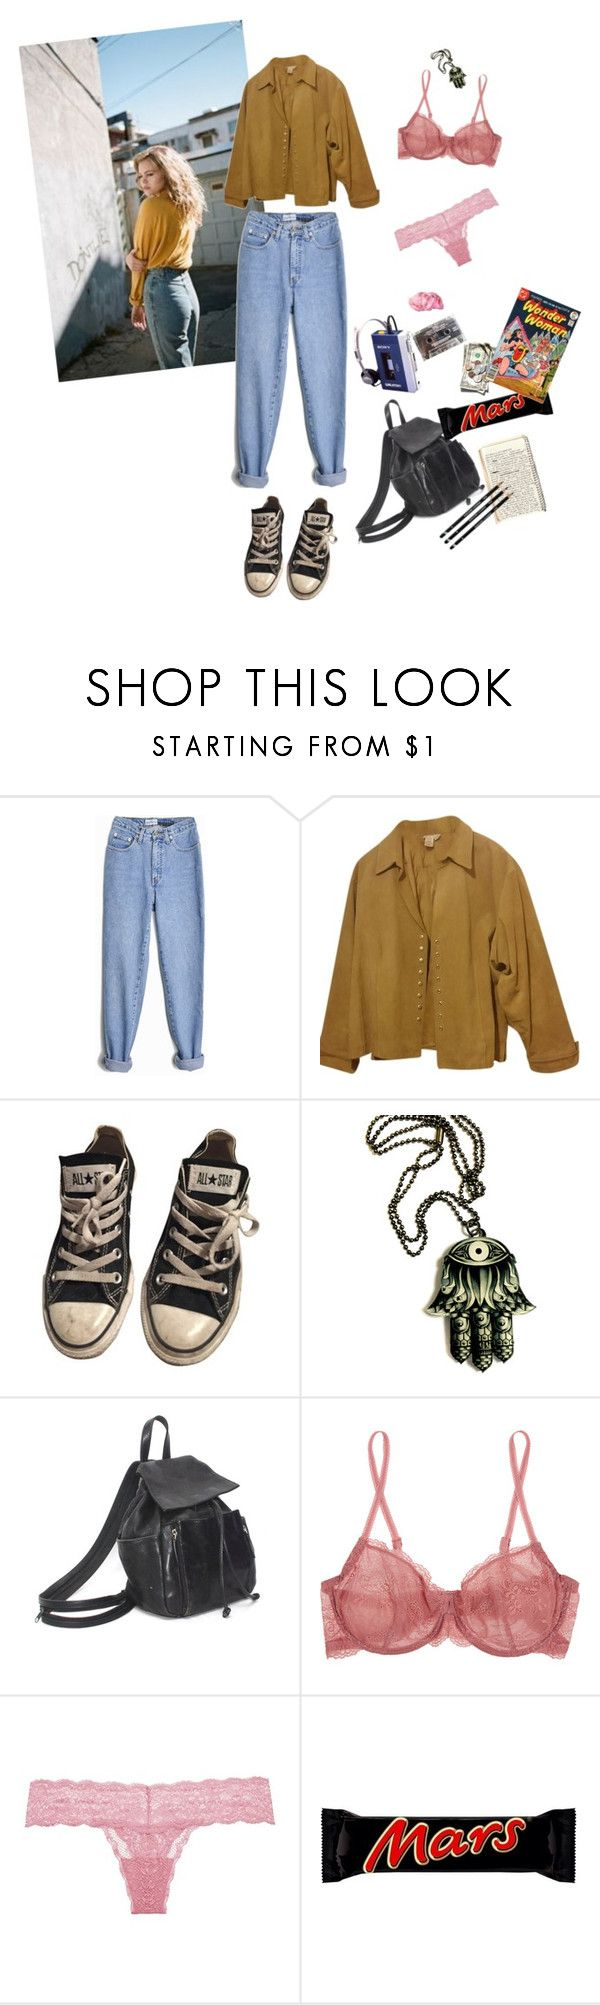 """90's"" by vilcsi888 on Polyvore featuring Sony, Coldwater Creek, Converse, Cosabella, Riegel and plus size clothing"